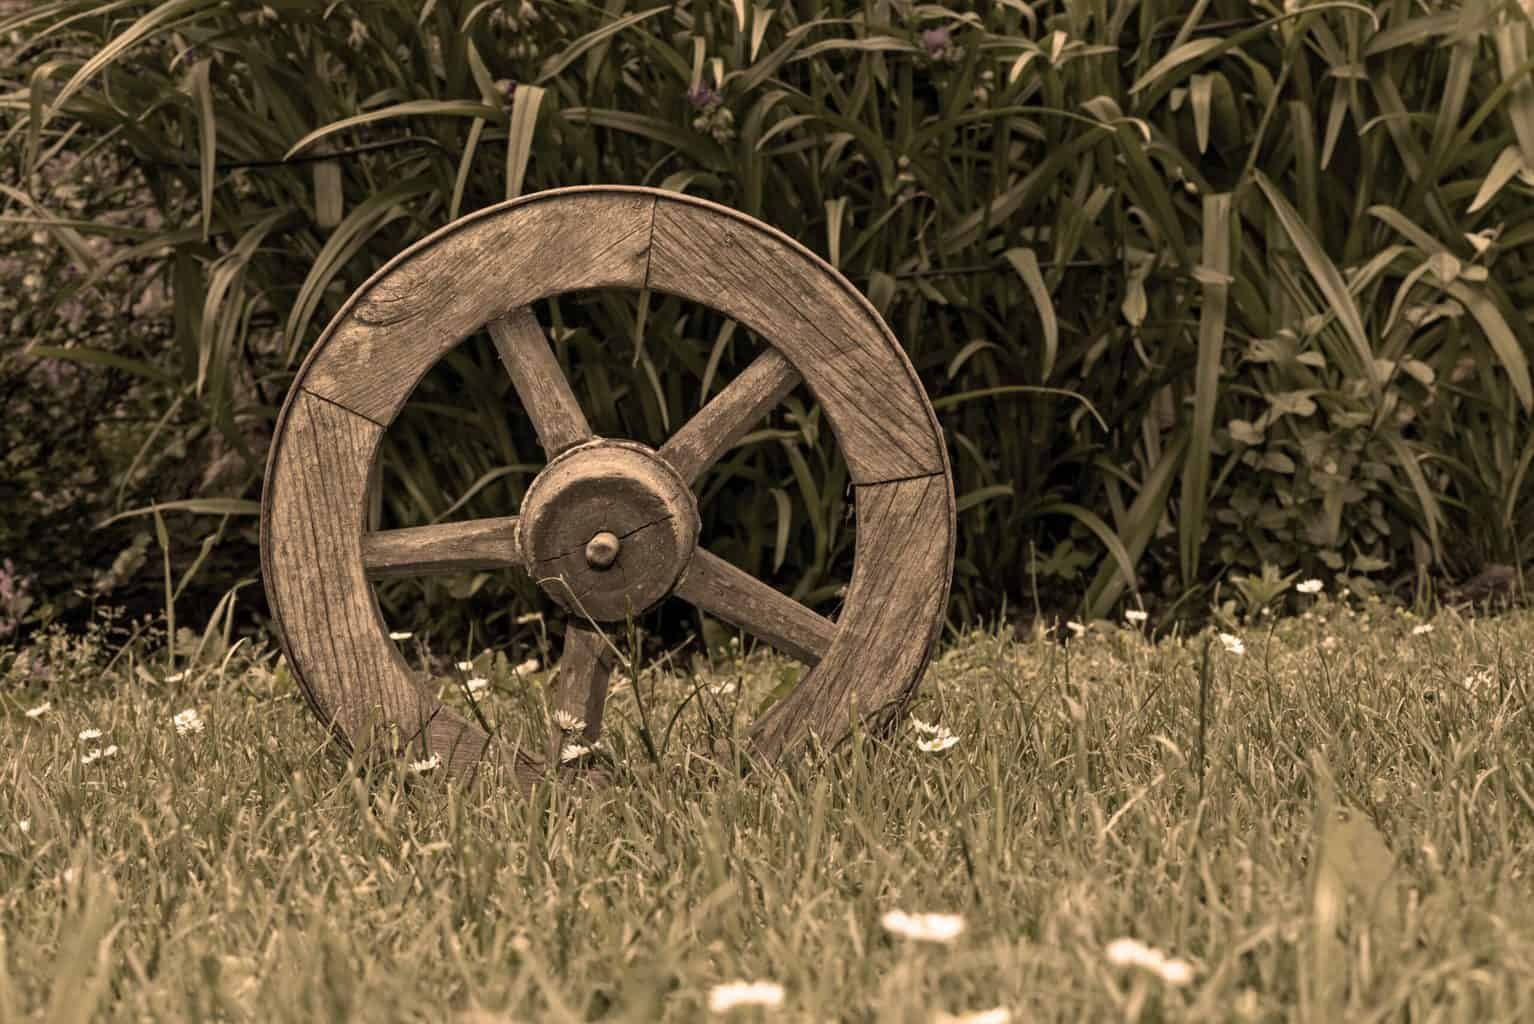 A wooden wheel on top of green grass